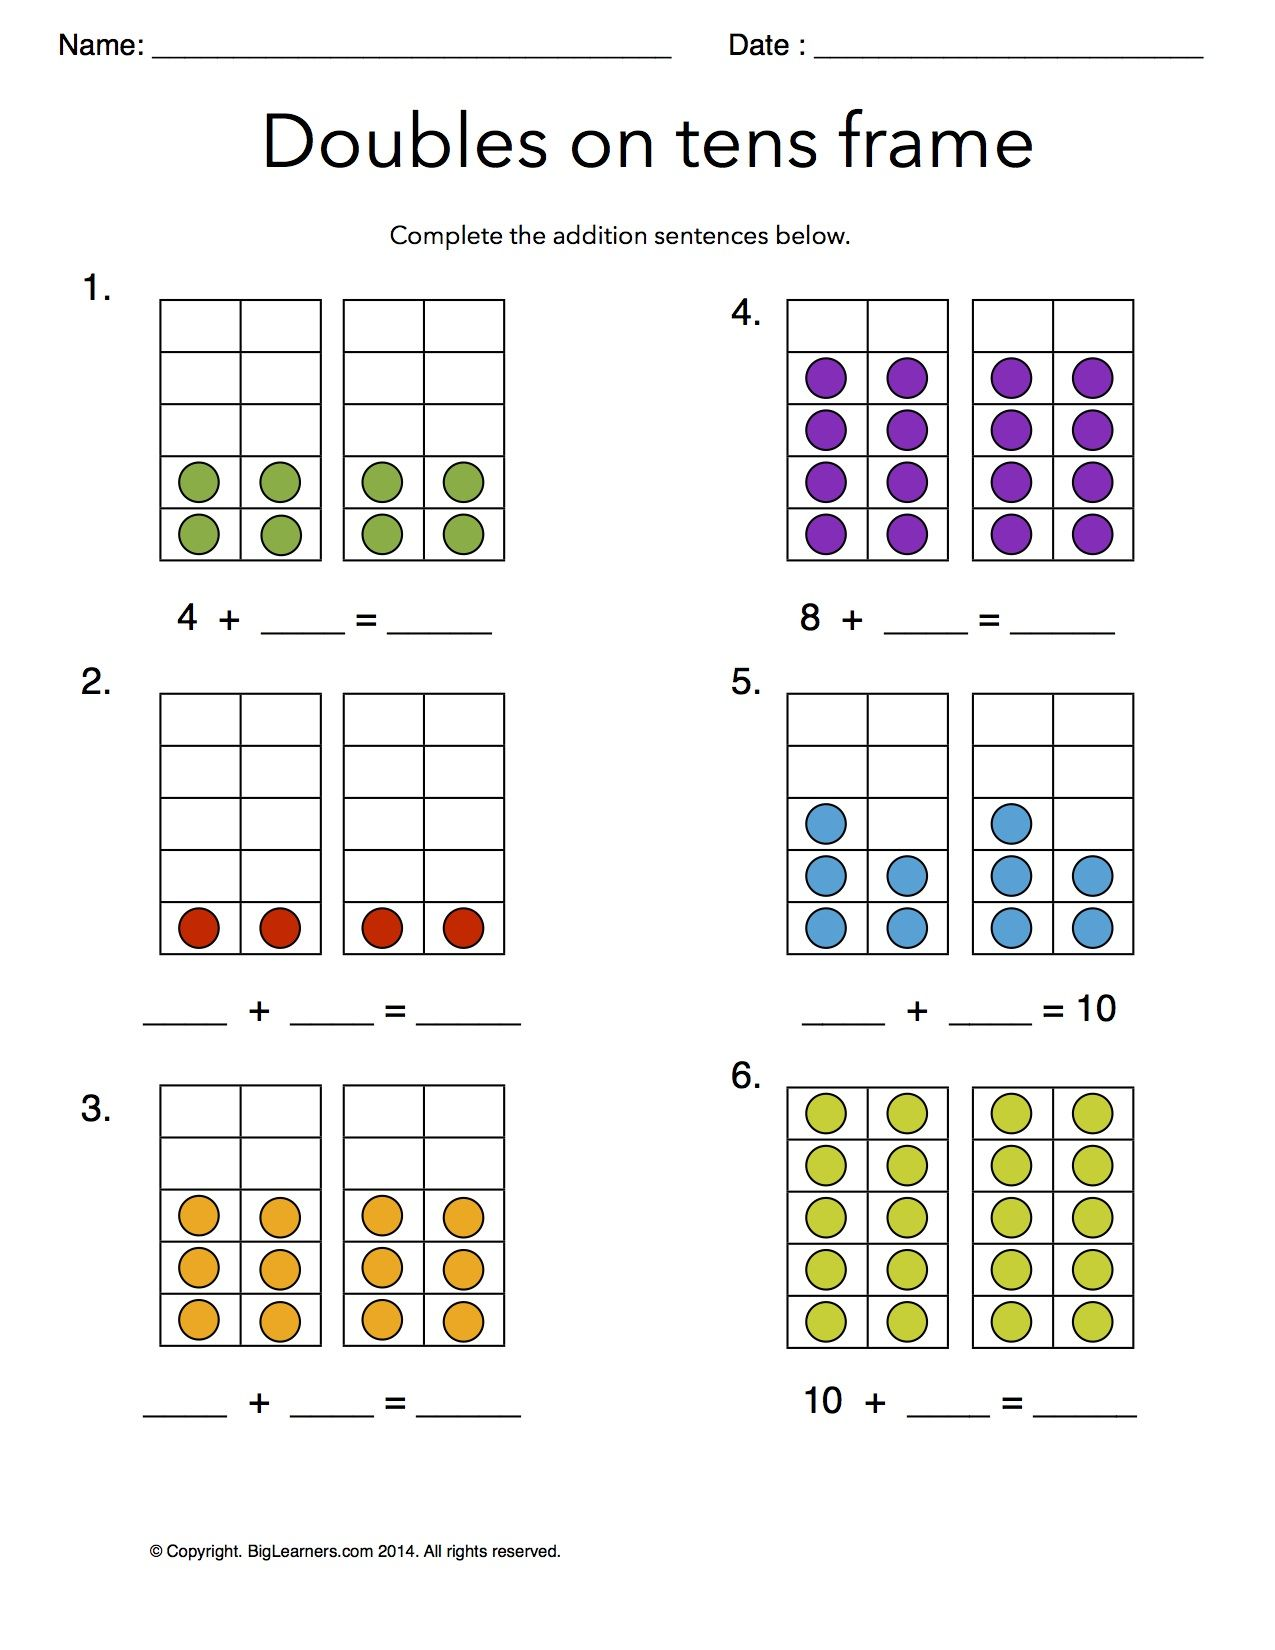 Worksheet Doubles On Tens Frames Practice Addition Doubles Facts On The Ten Fra Free Math Worksheets Kindergarten Math Worksheets 1st Grade Math Worksheets